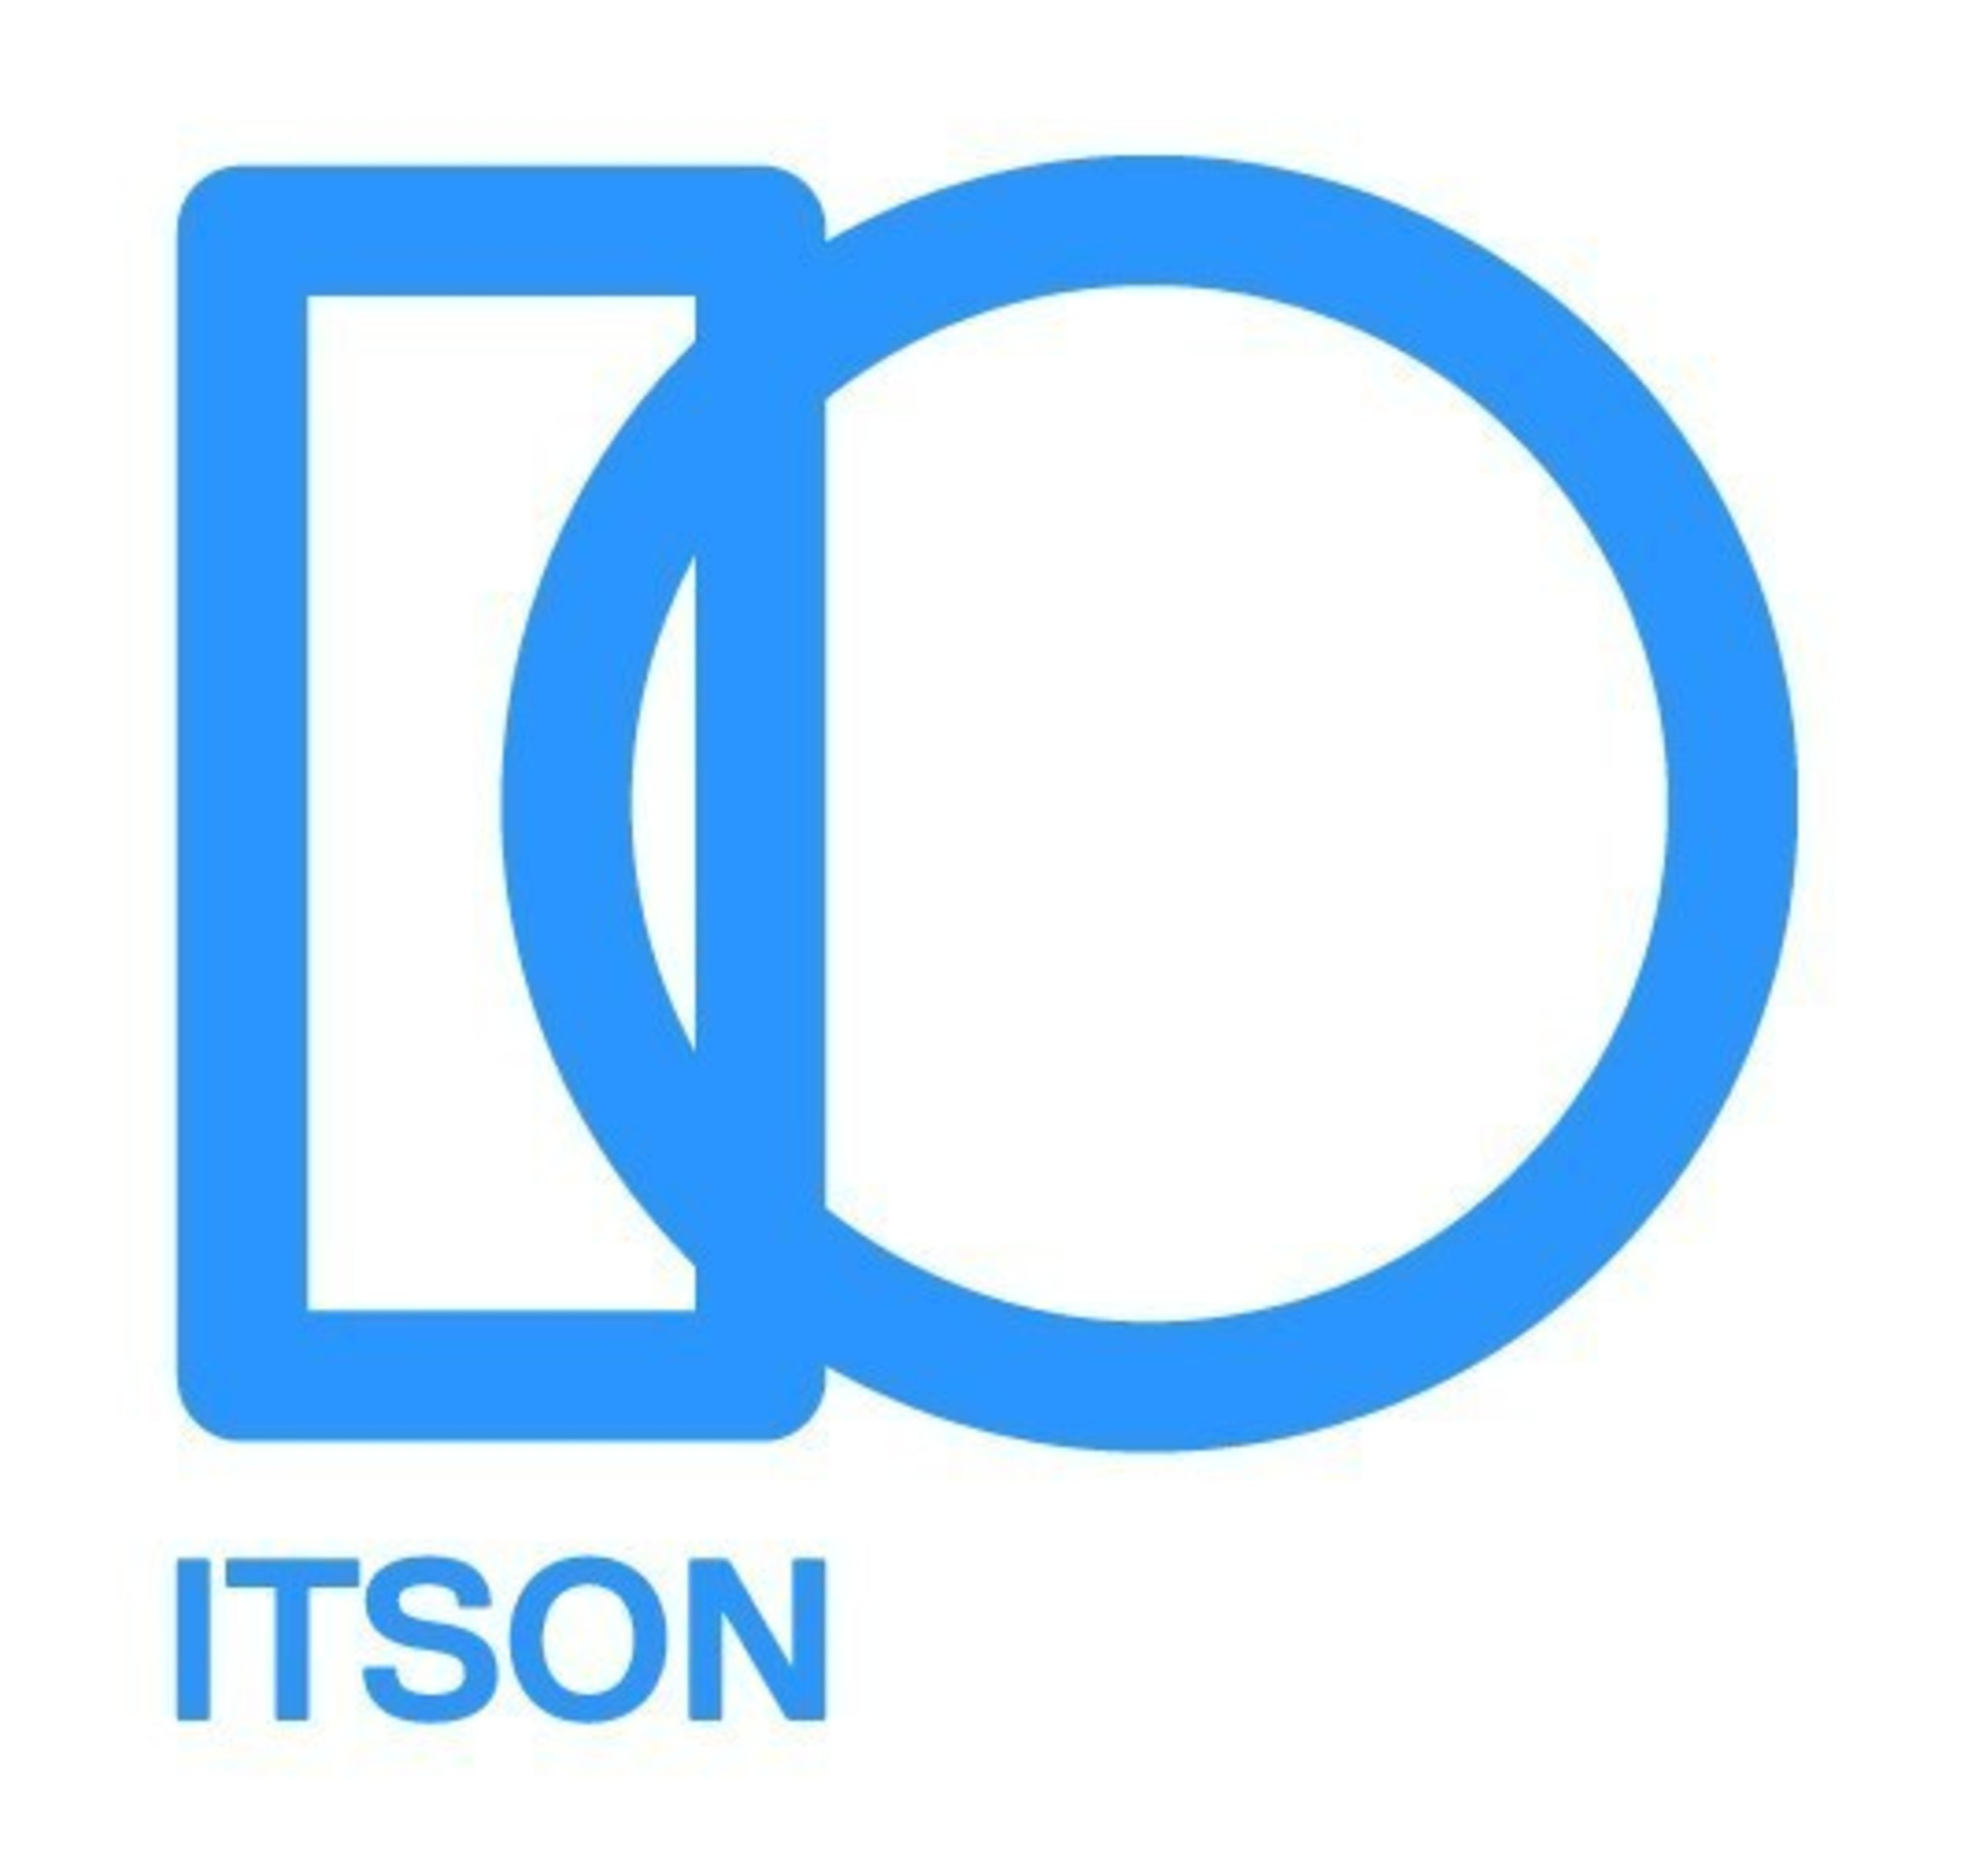 CTIA Recognizes ItsOn as One of the Wireless Industry's Top Innovators